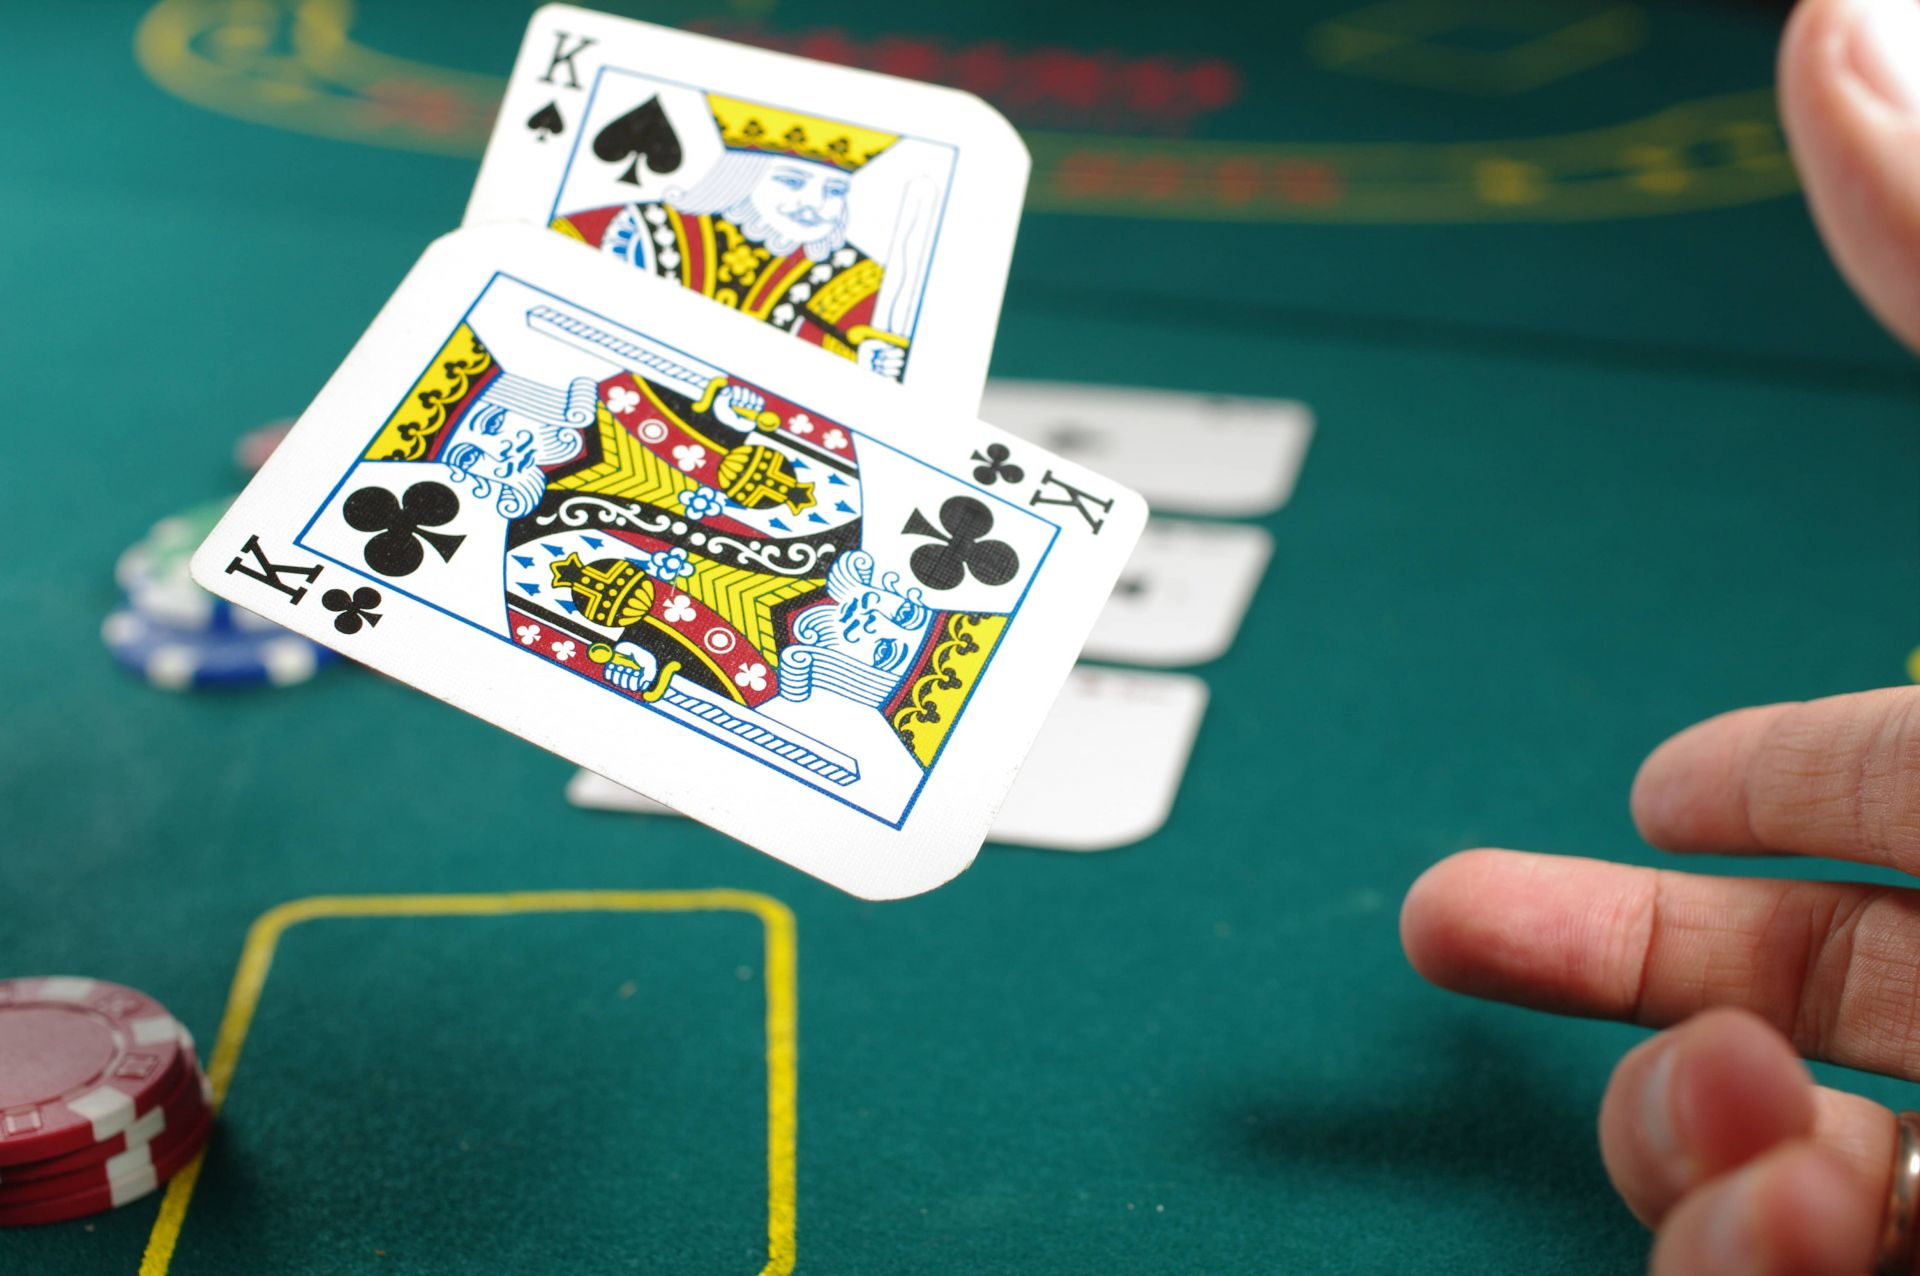 Fun88|Recommended online casino, full guarantee for casino games, rejecting black web fraud